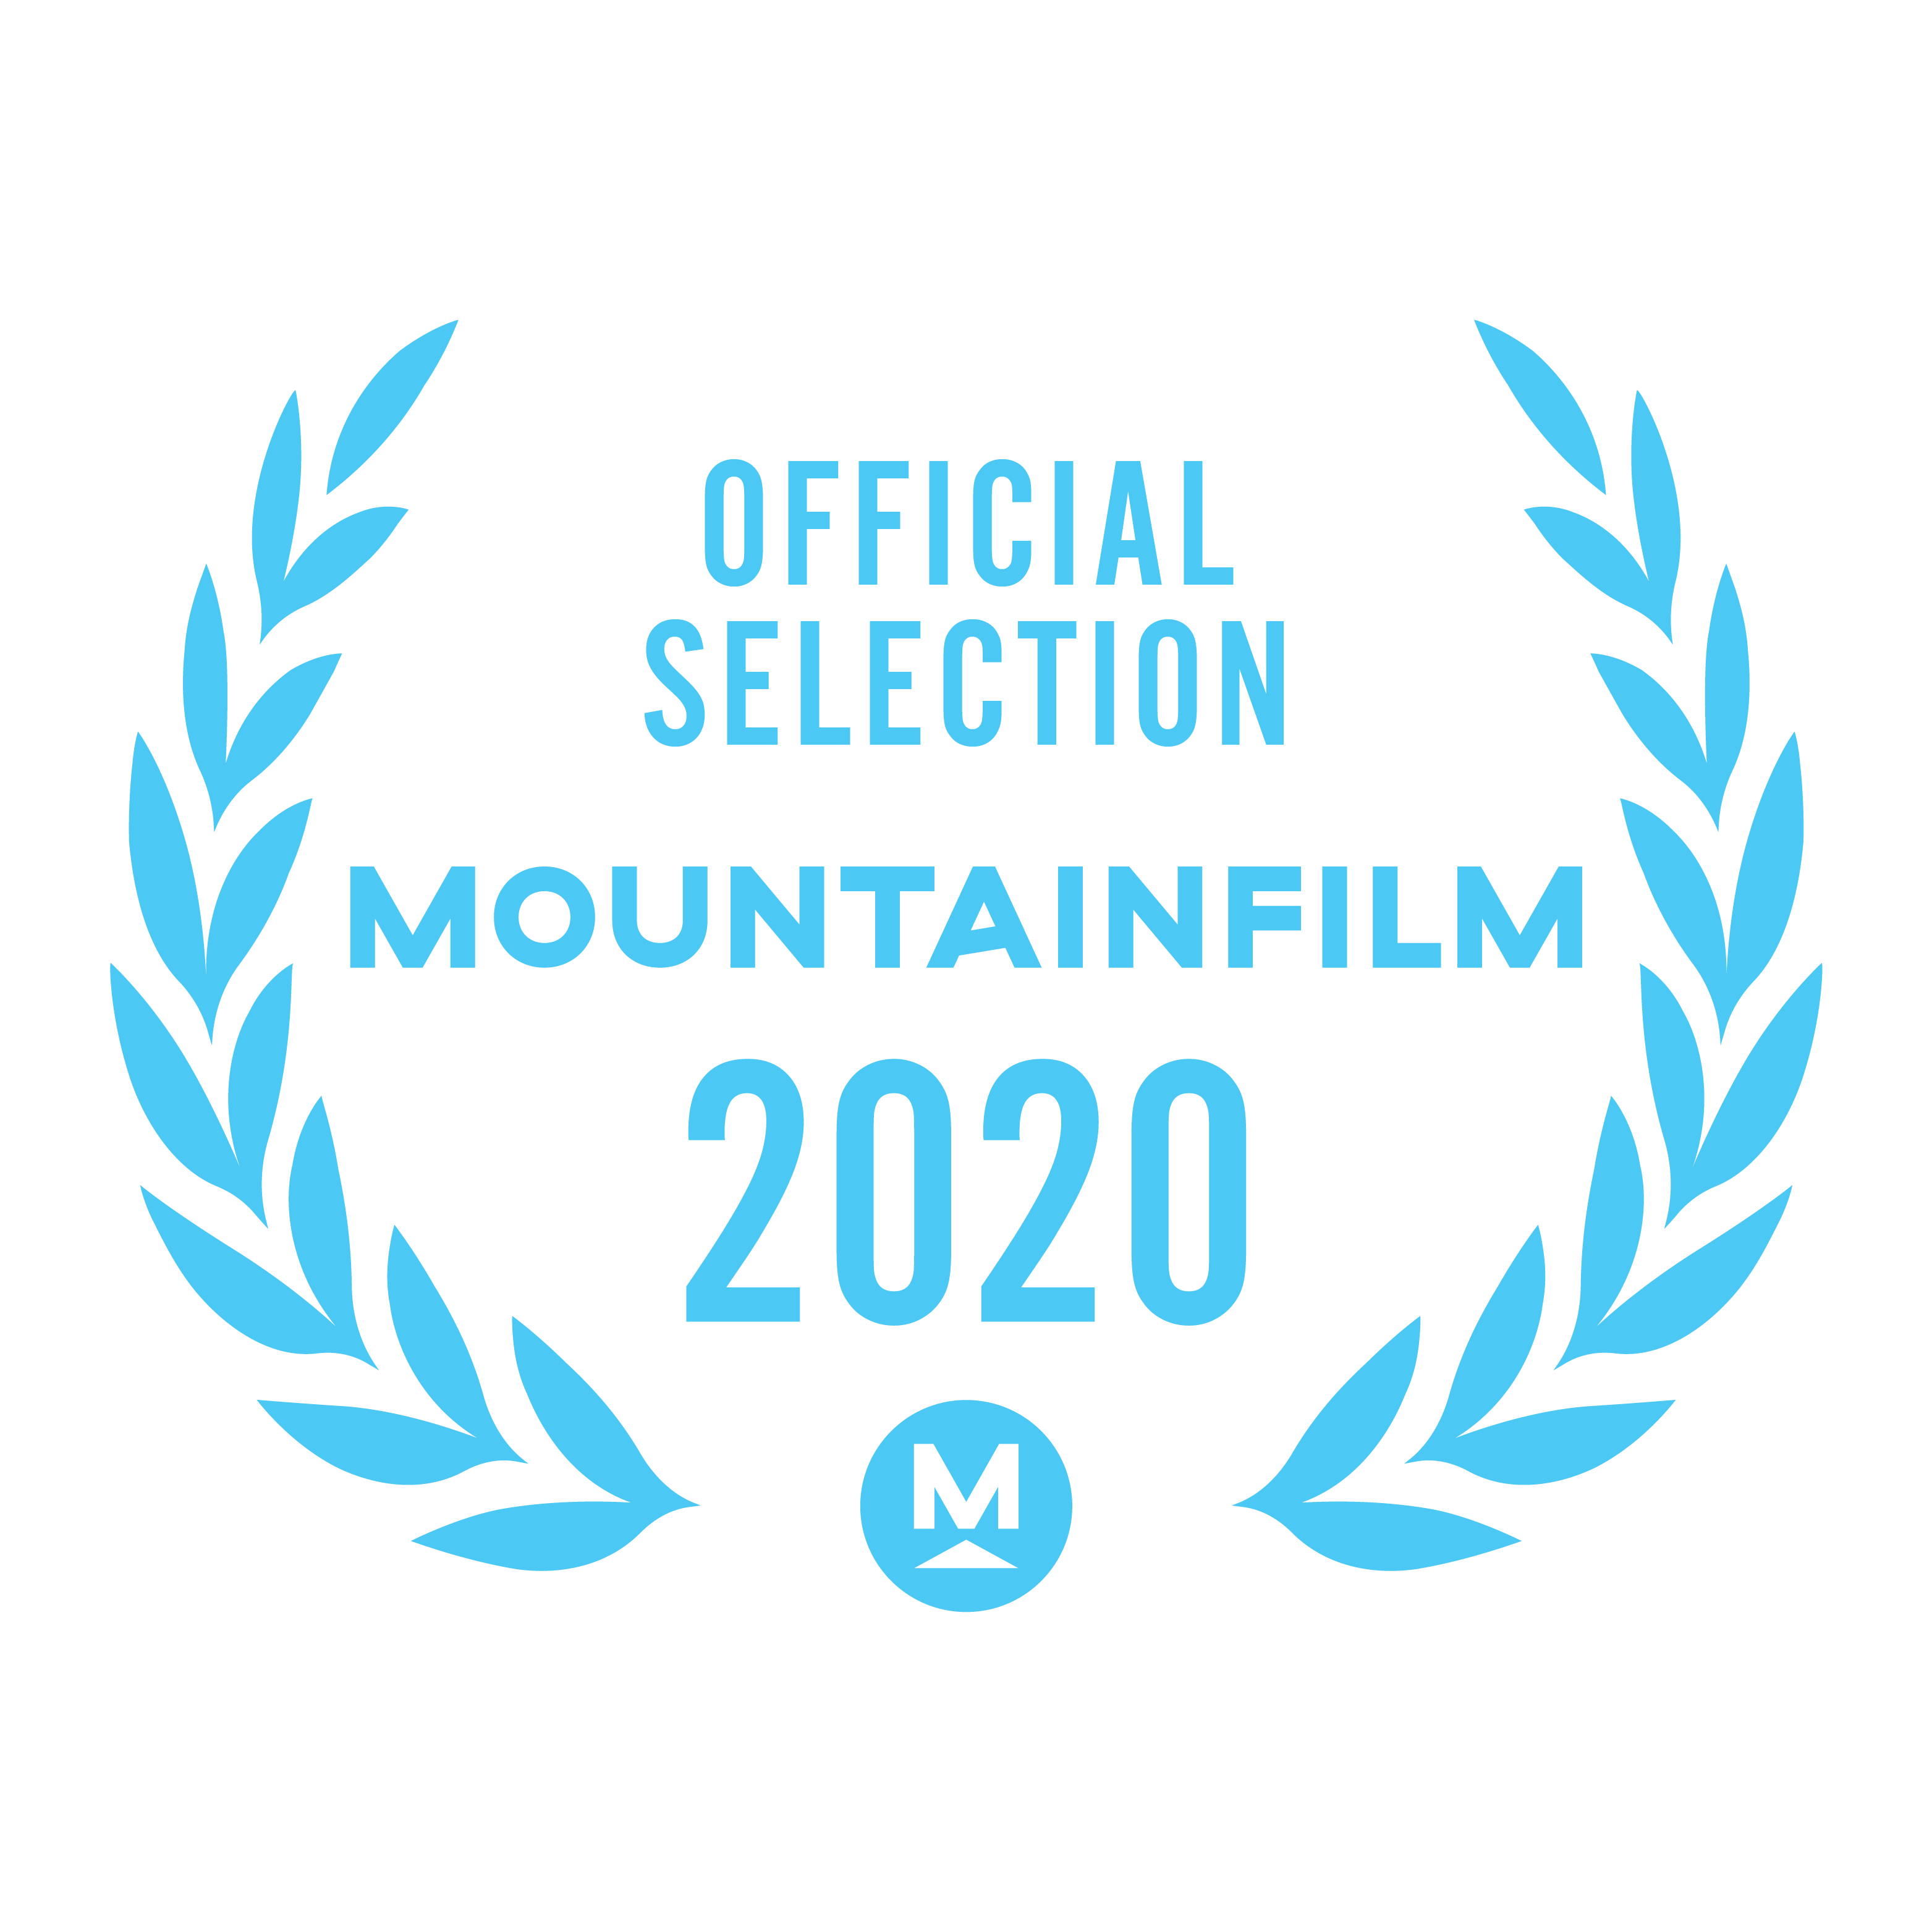 Mountainfilm 2020 Official Selection